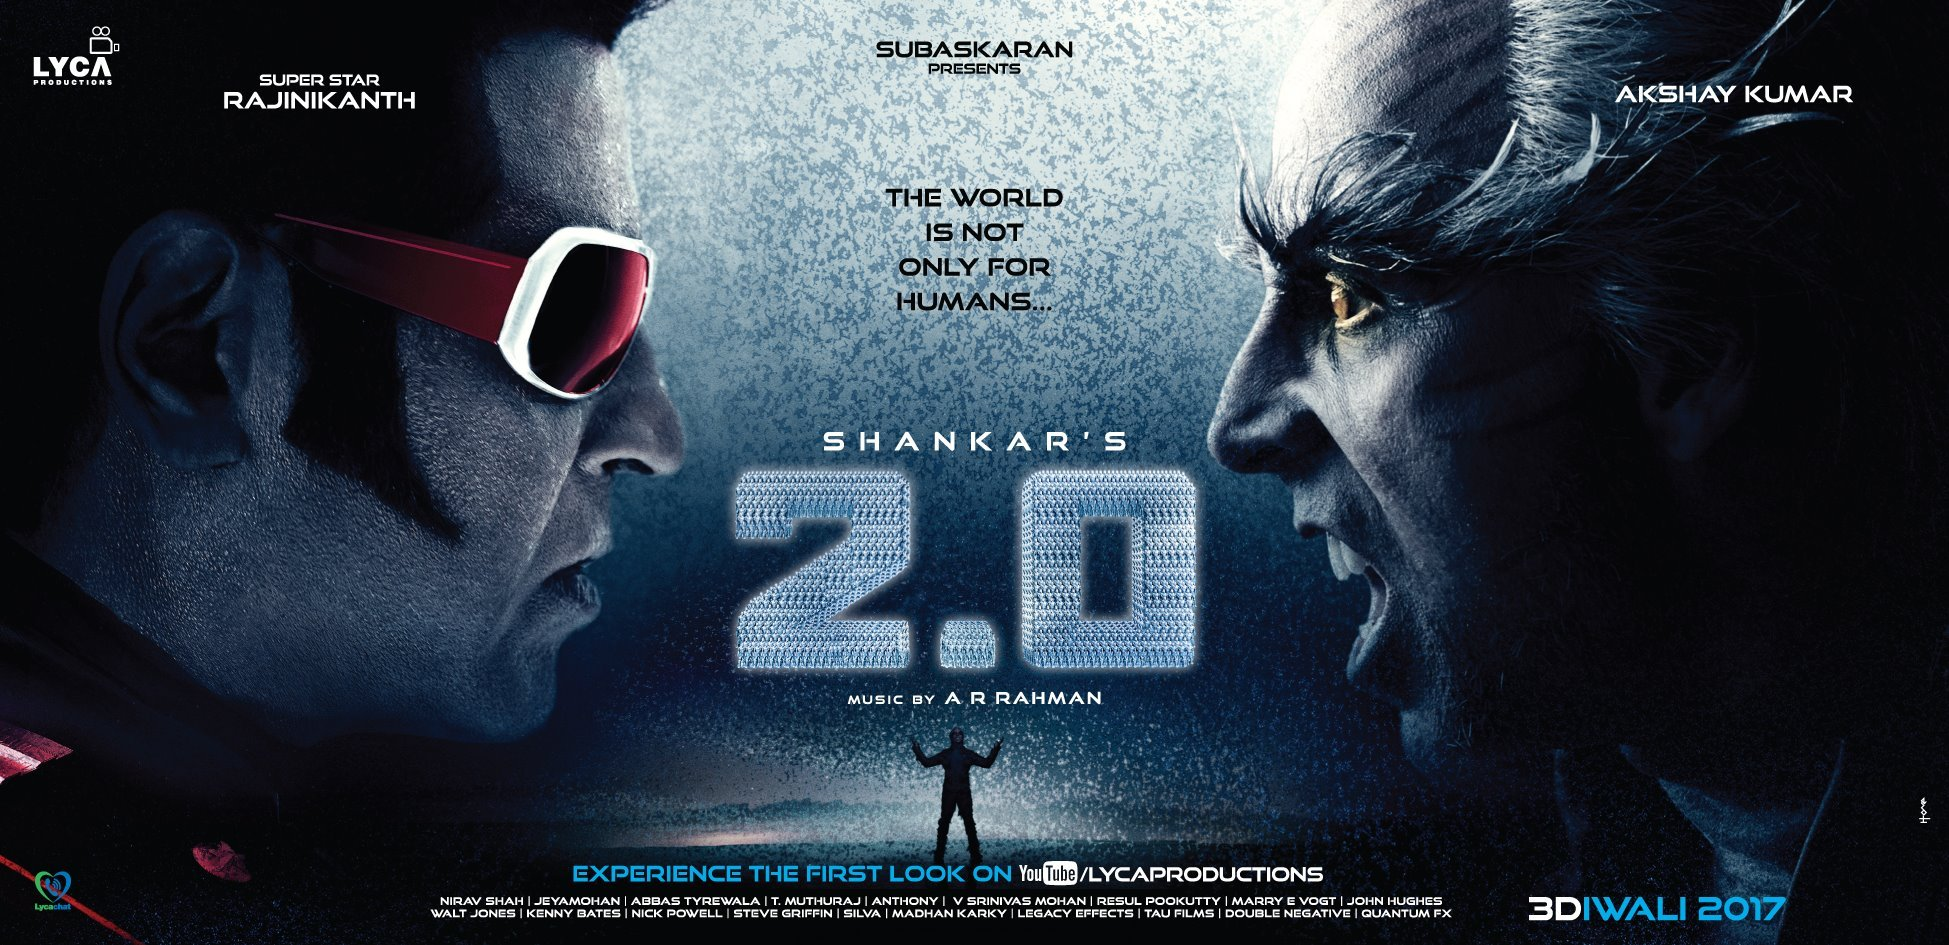 2.0 first look rajinikanth and akshay kumar